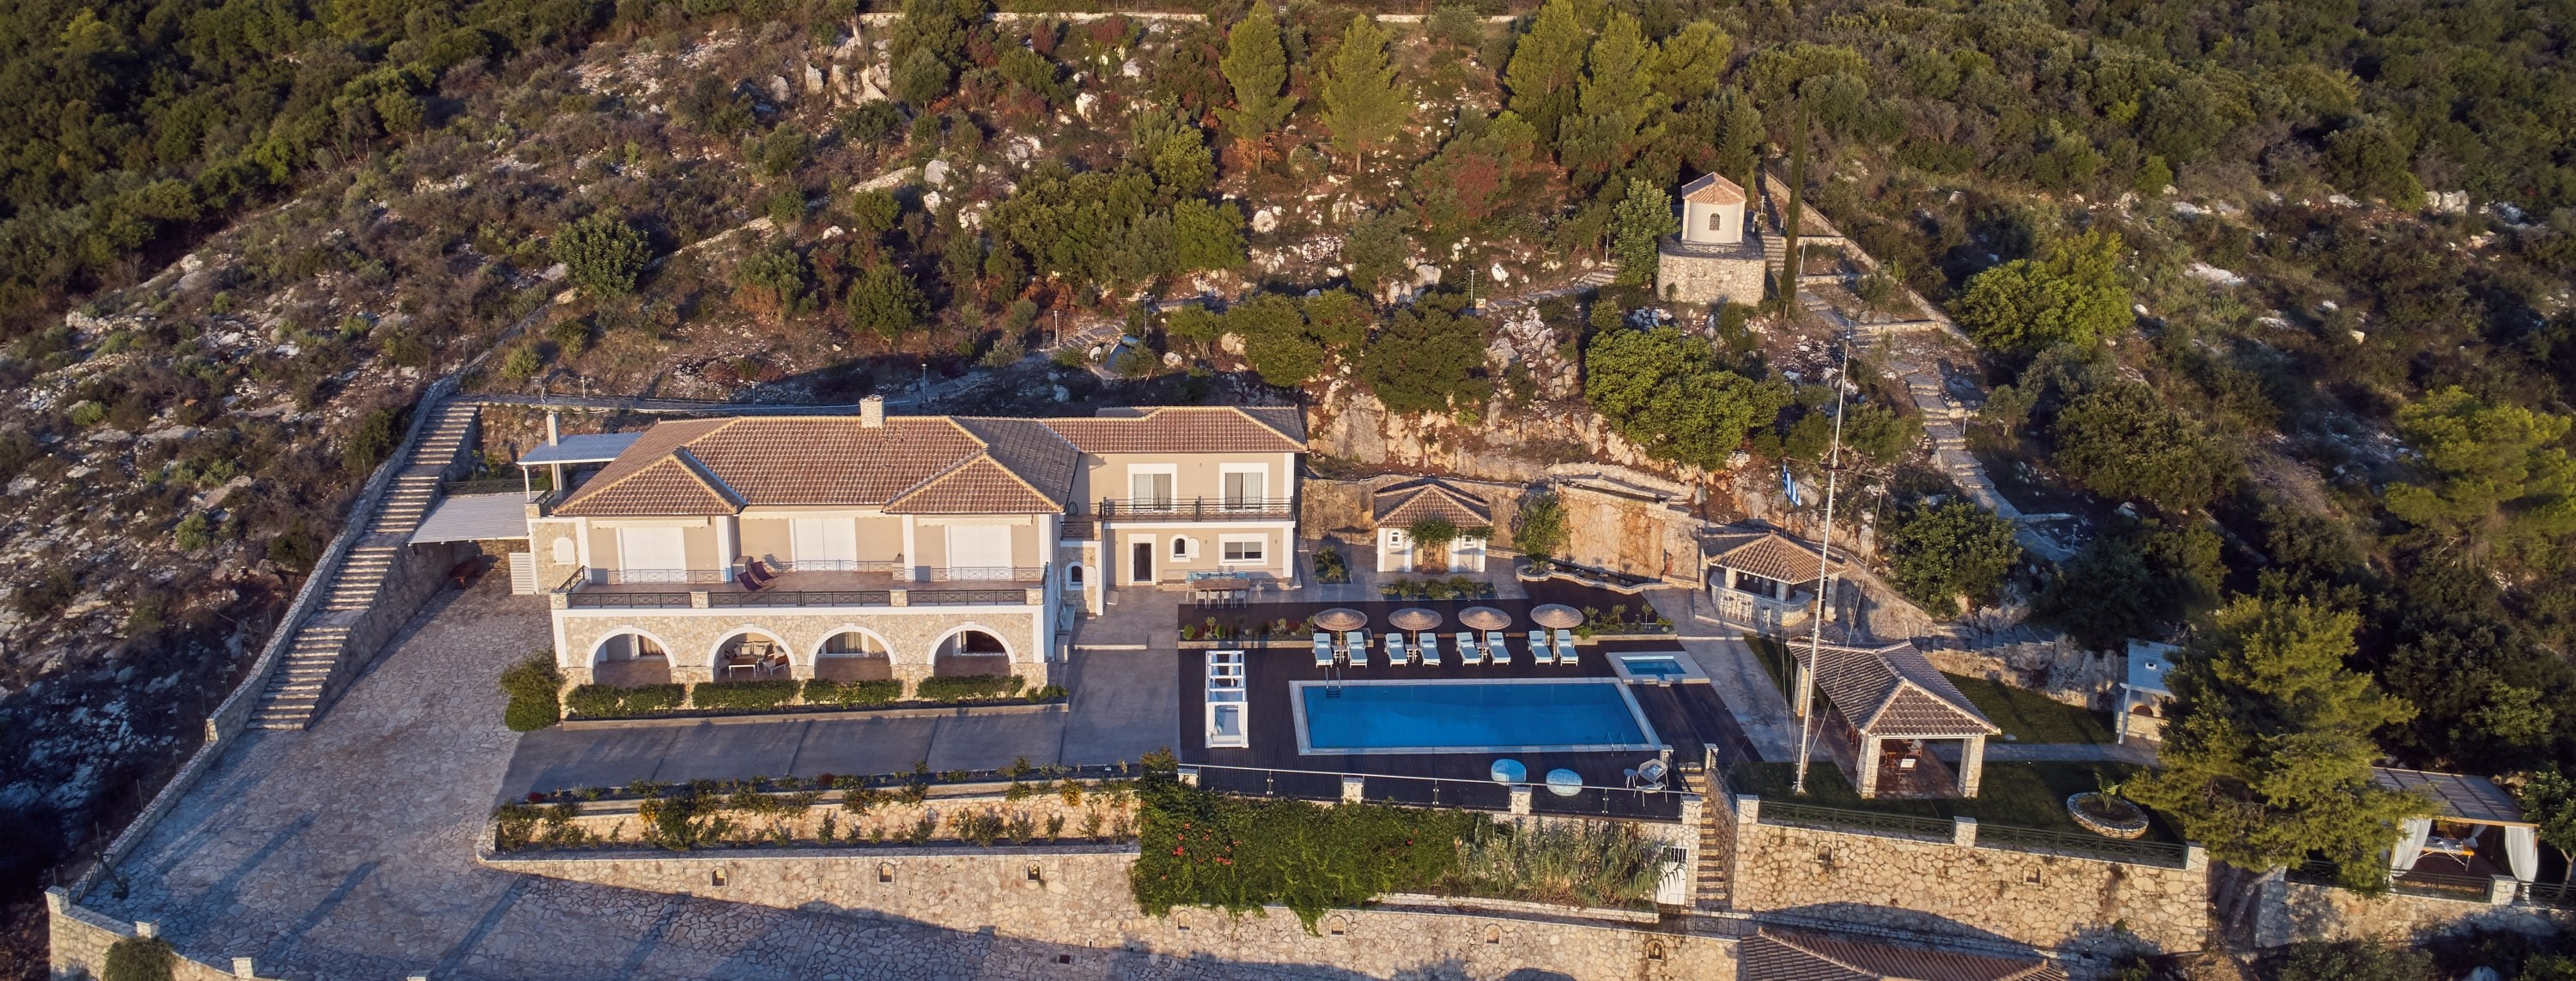 Property Image 1 - Majestic luxury villa with impressive facilities